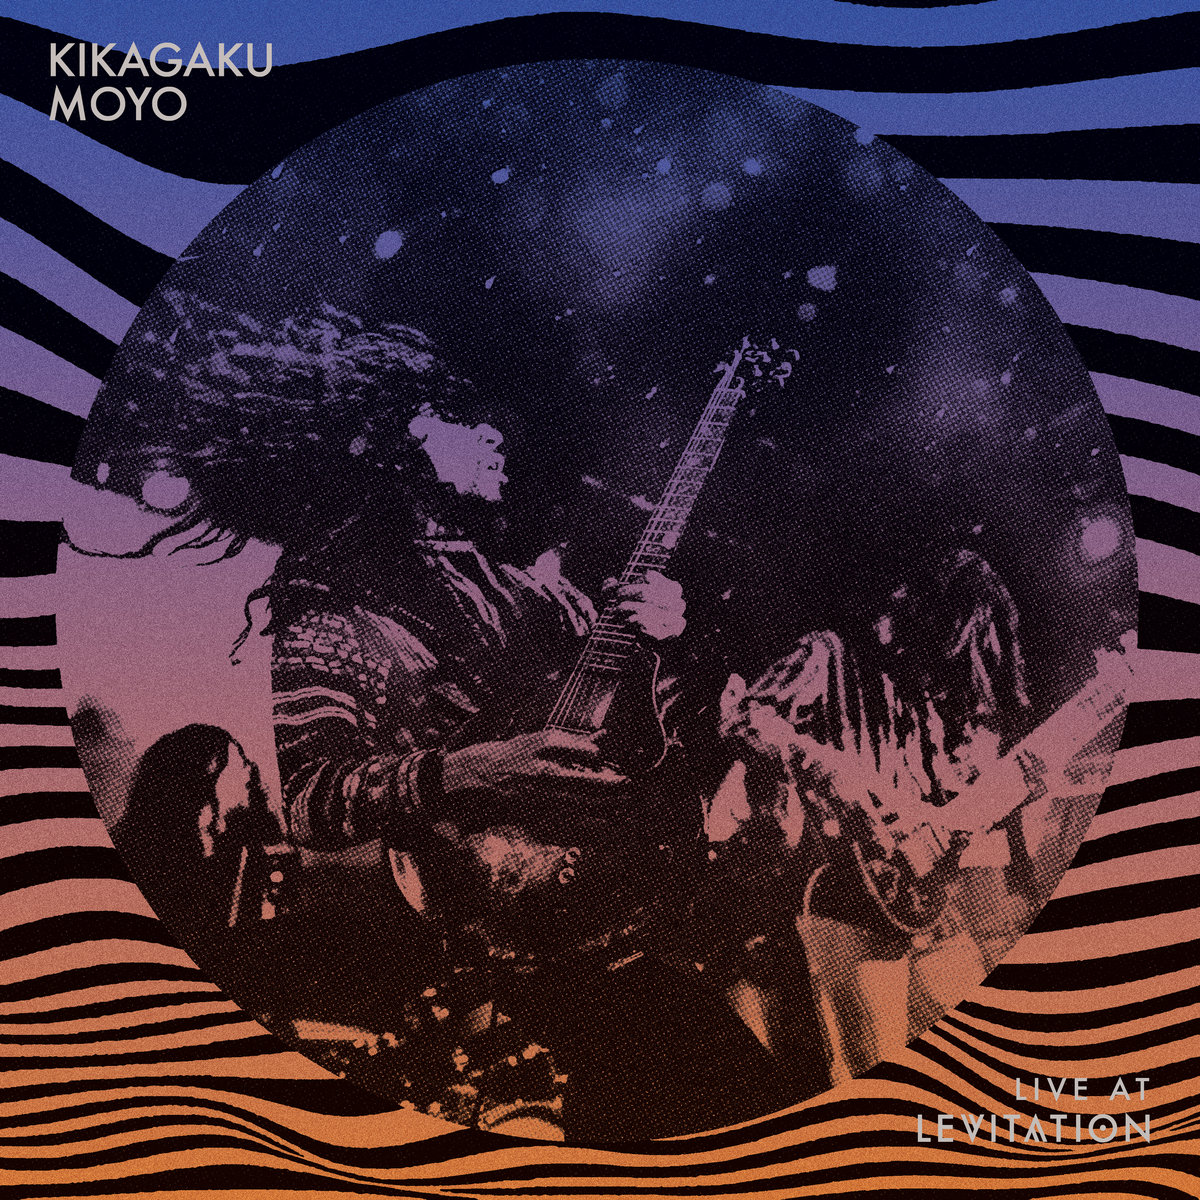 kikagaku moyo live at levitation